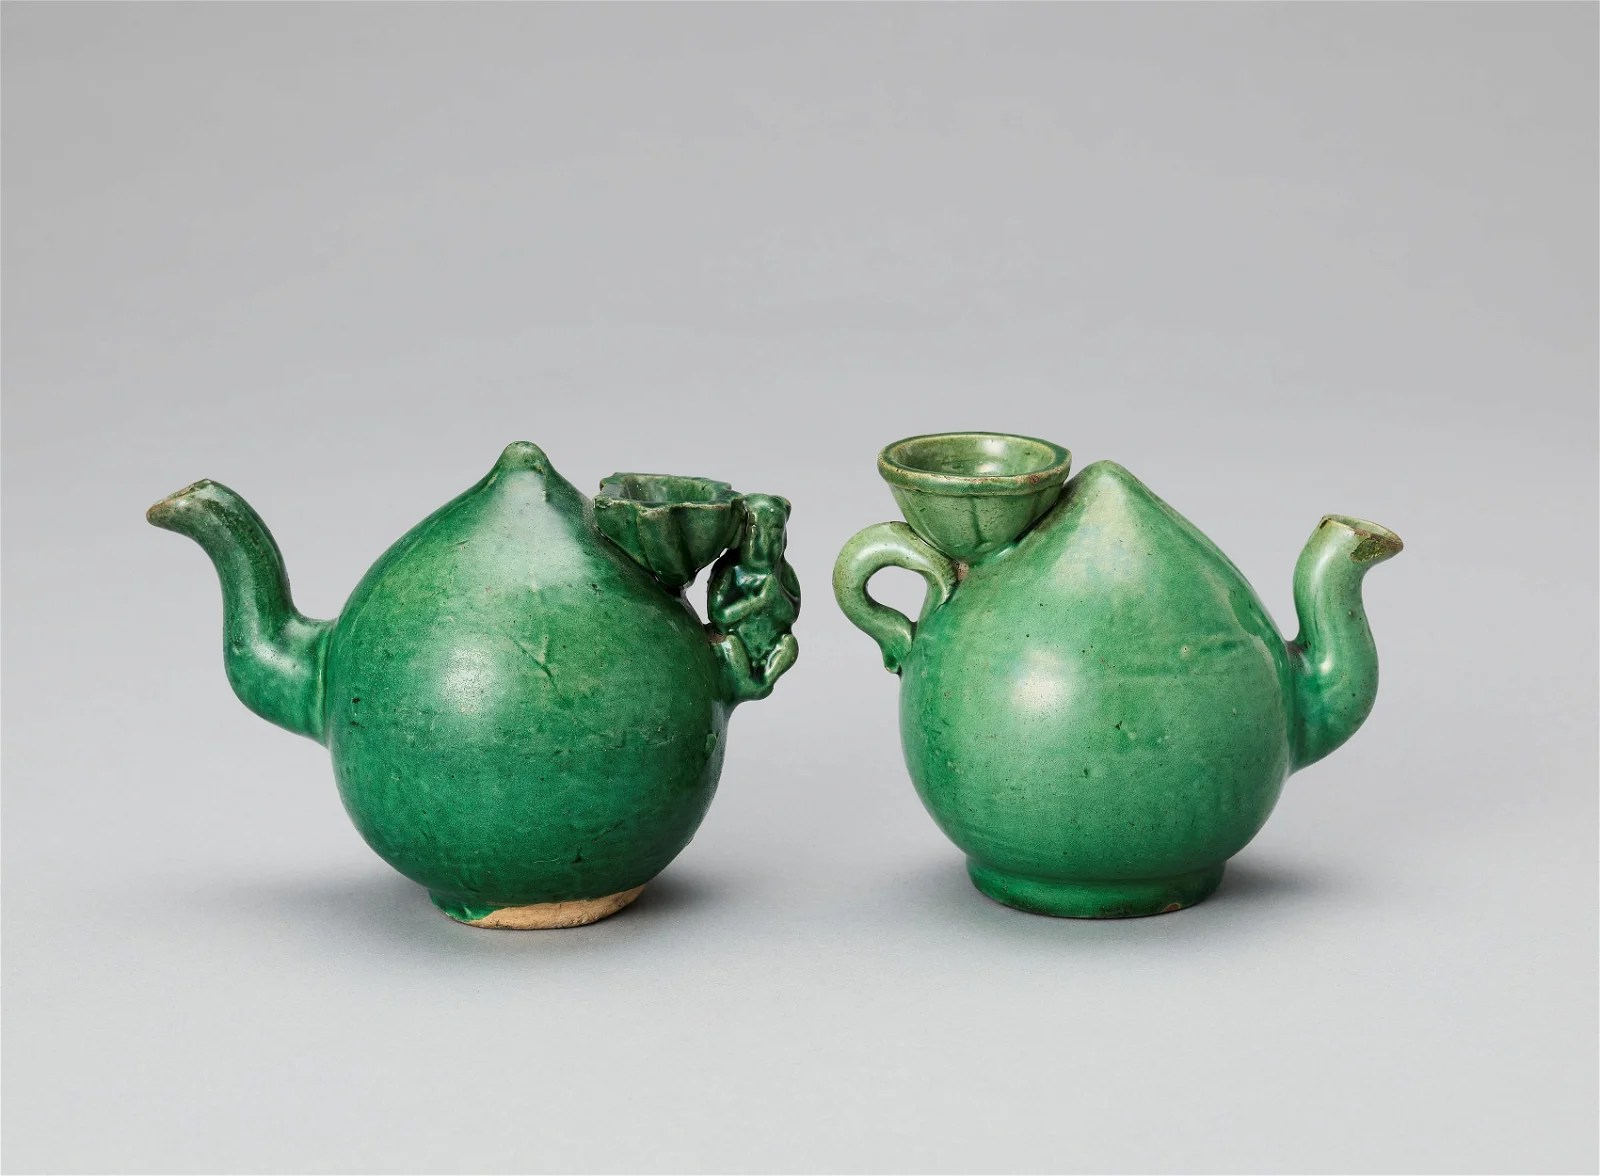 A PAIR OF PEACH FORM WATER DROPPERS, KANGXI